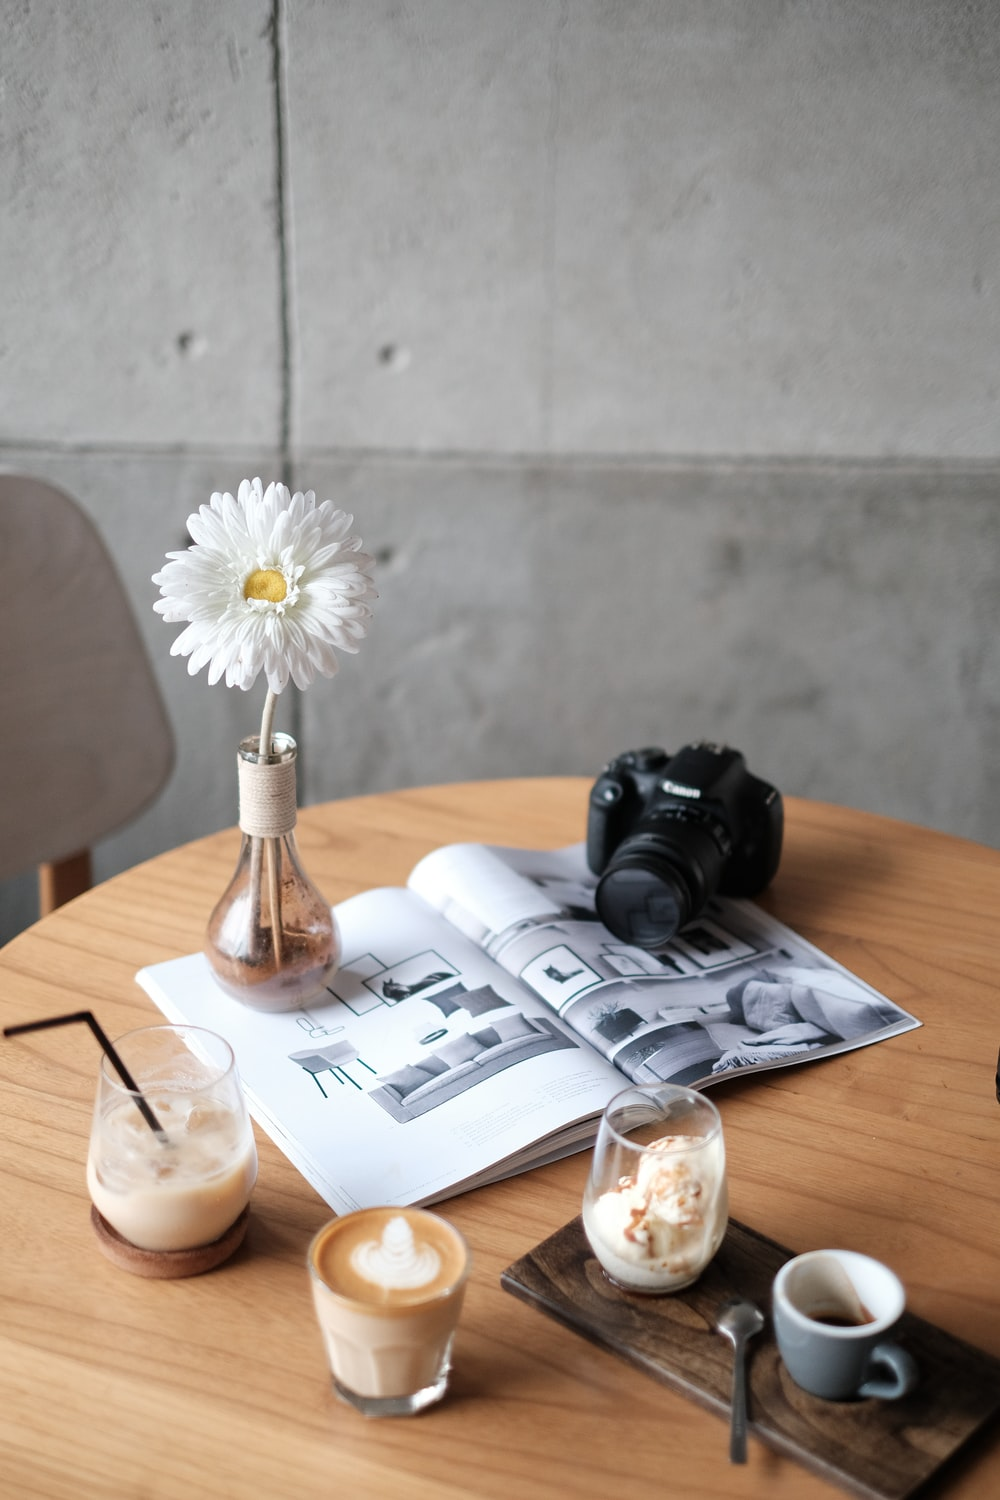 black Canon DSLR camera on white book beside white flower